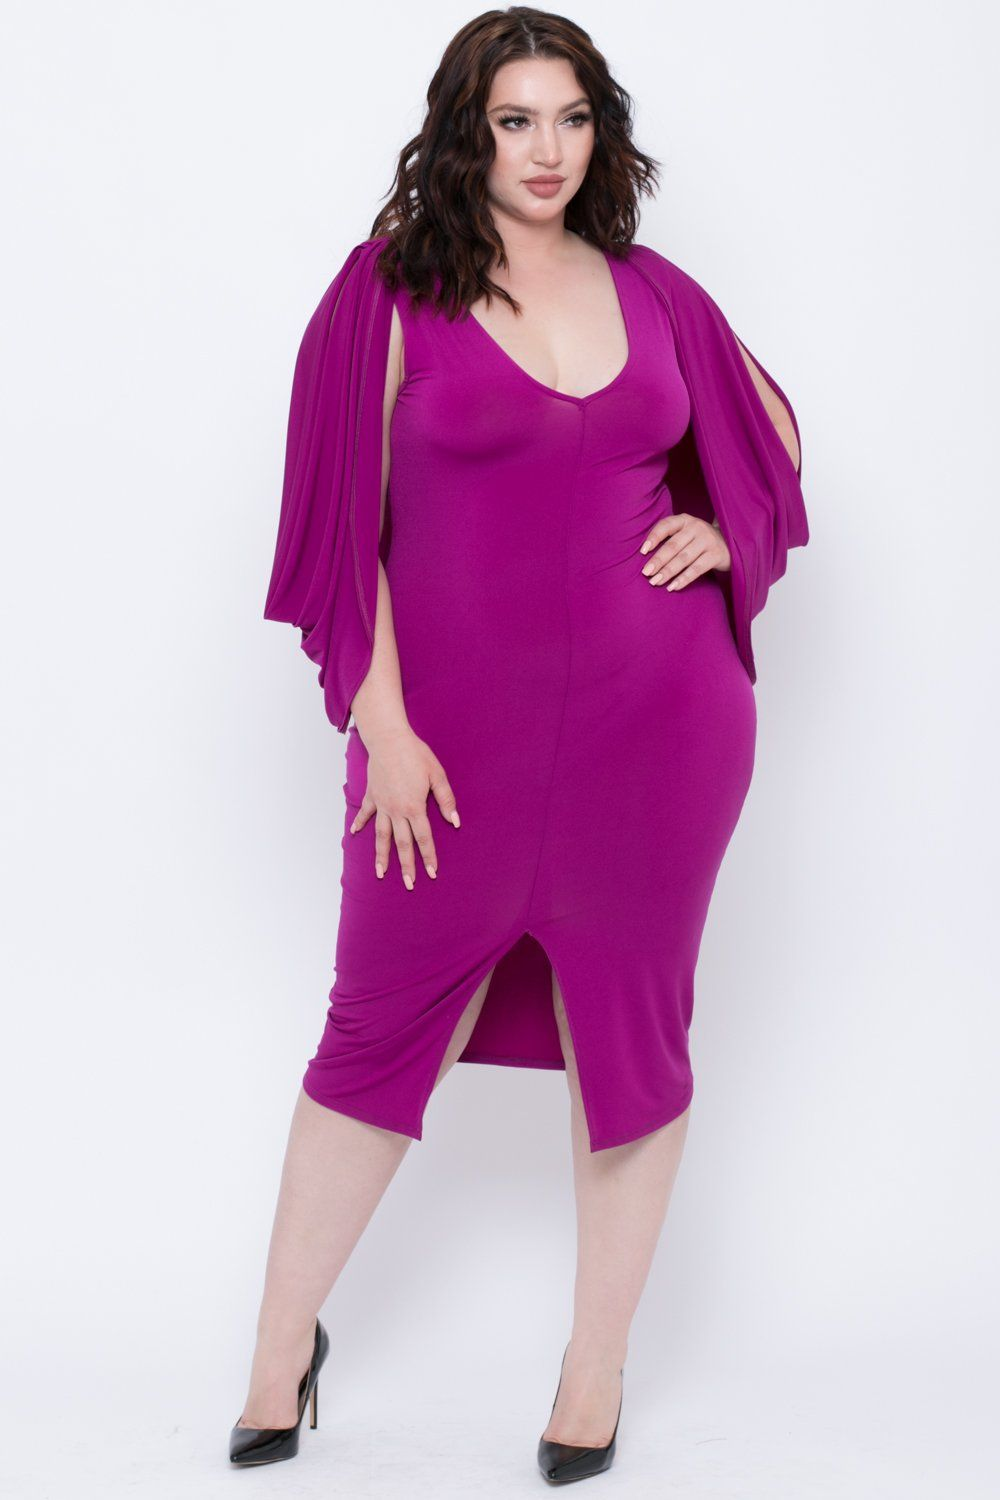 01aa6aa96861c This plus size Grecian goddess inspired cocktail dress features  stretch-knit fabric